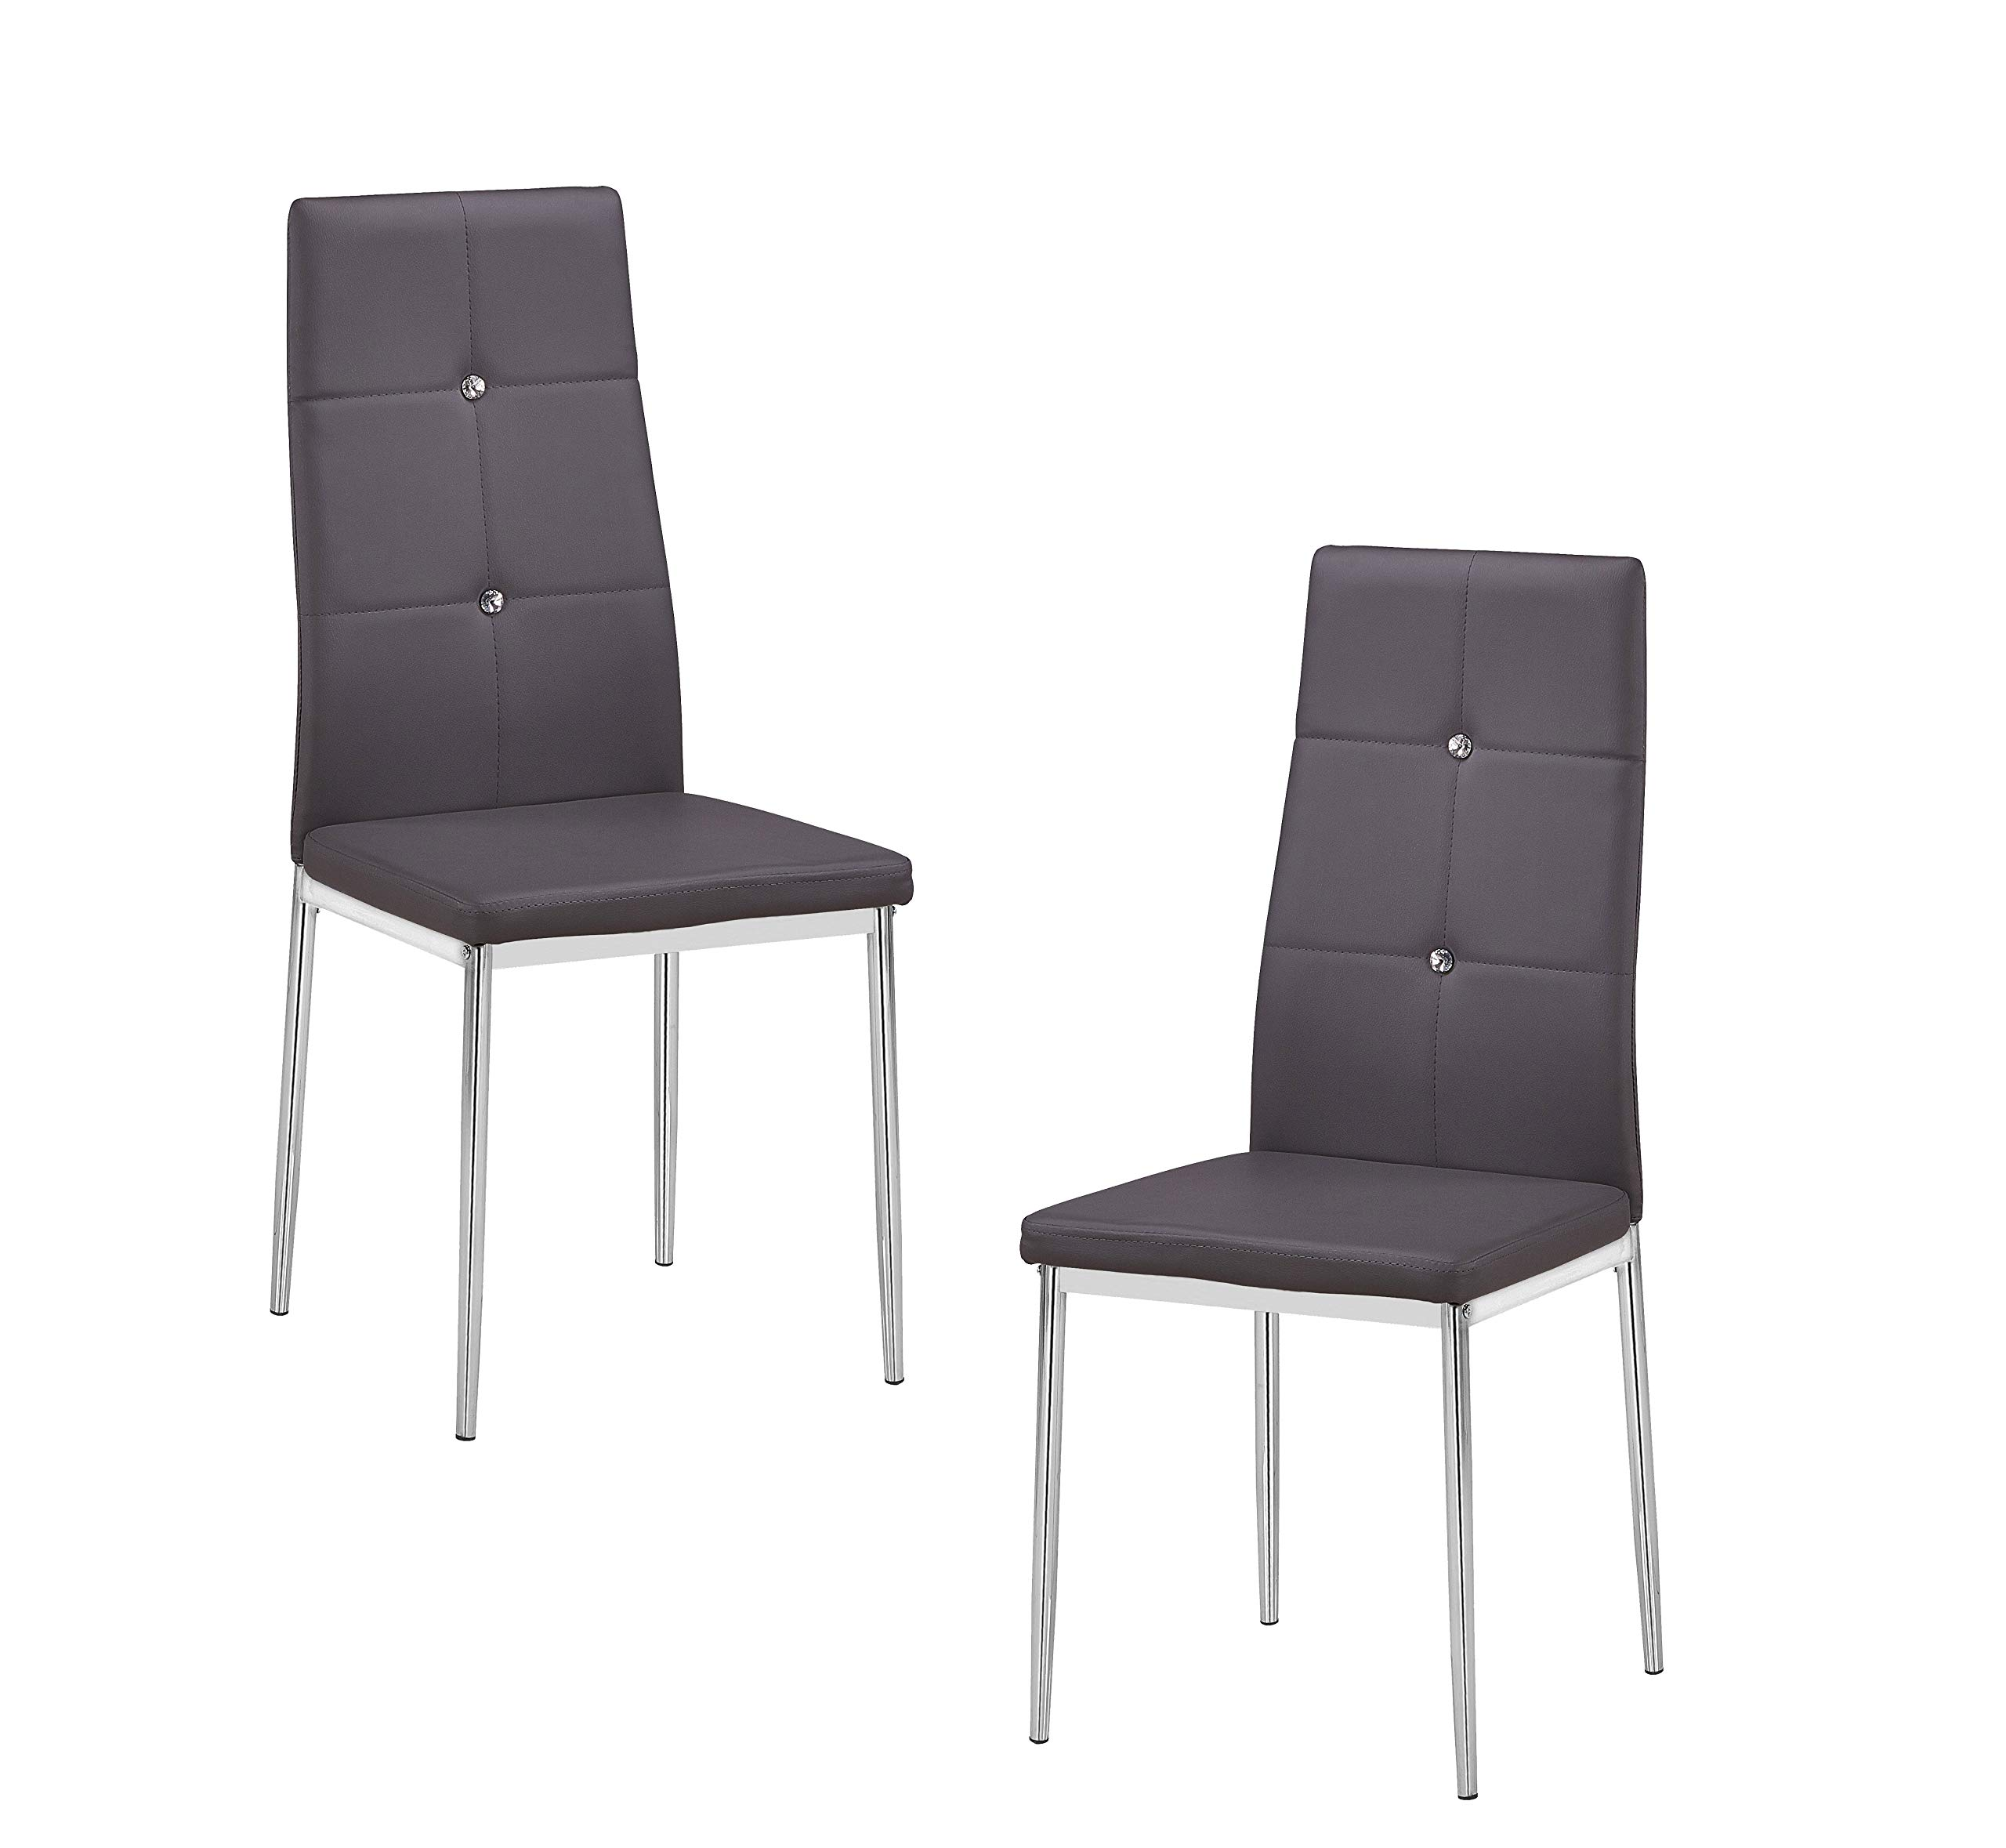 Best Master Furniture T246 Chapman Modern Living Parson Chairs - Set of 2, Grey